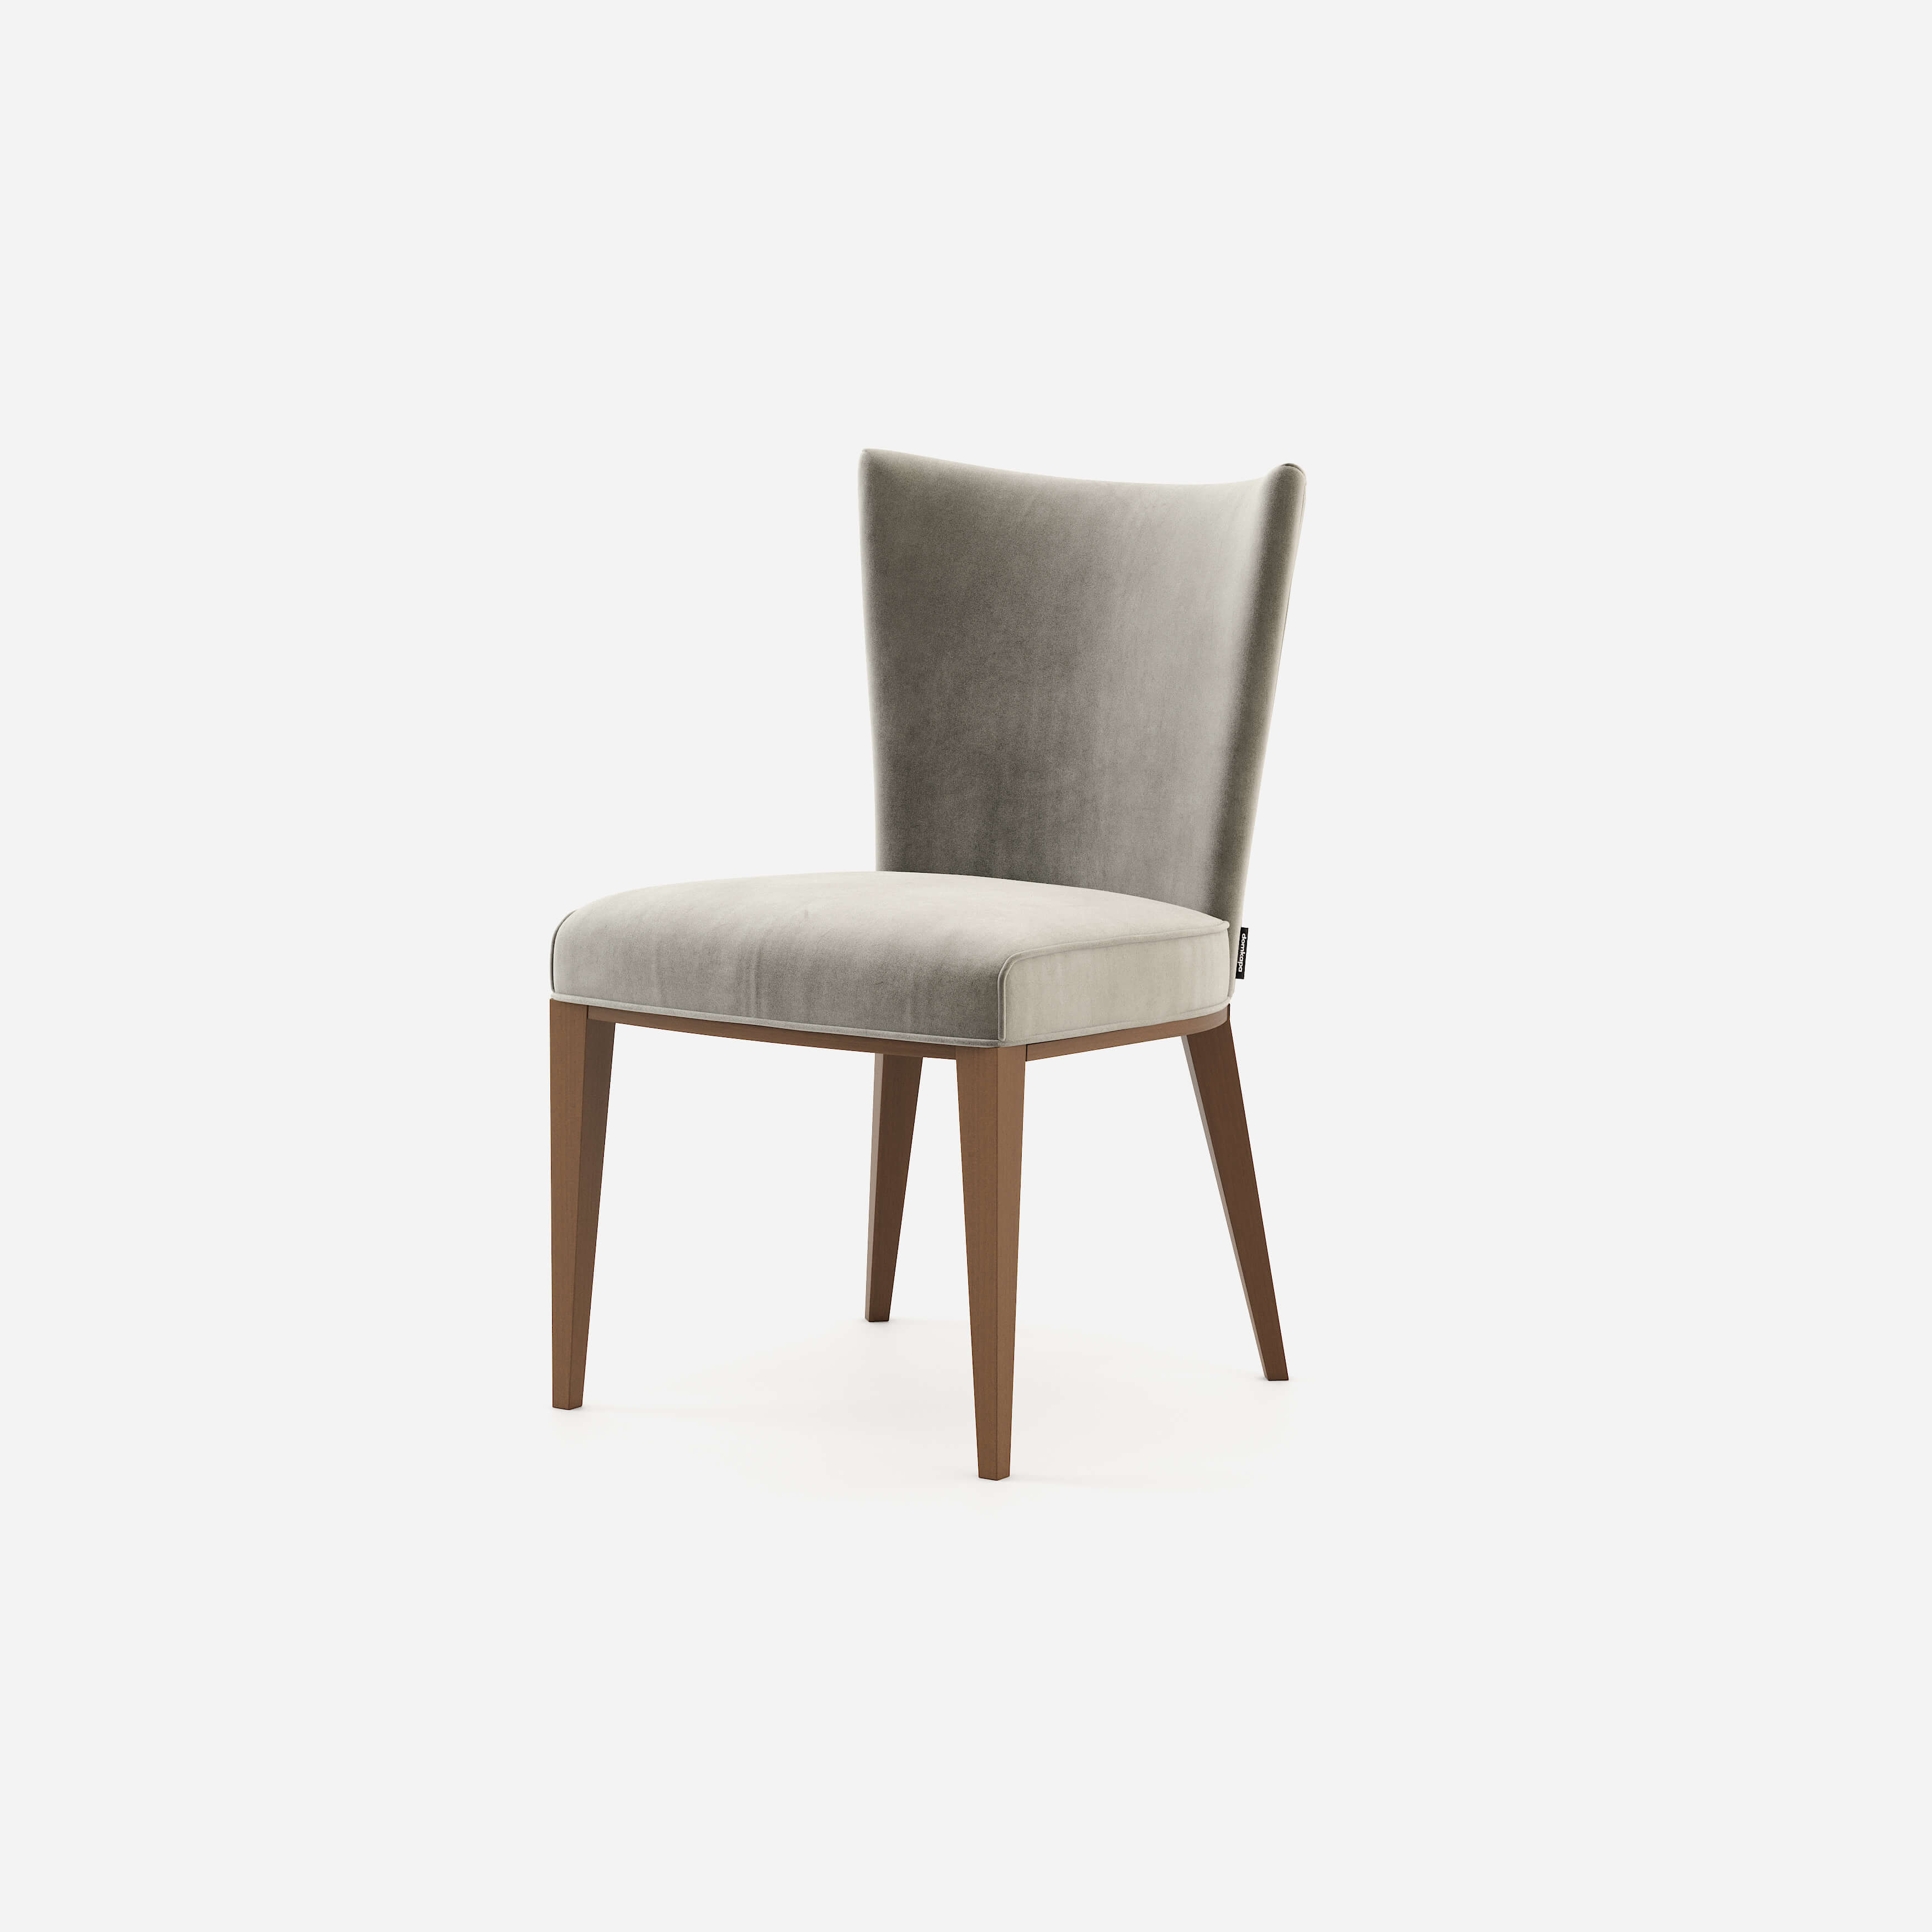 vianna-chair-cadeira-domkapa-living-room-dining-room-neutral-colors-velvet-luxe-fabrics-hotel-projects-contract-1